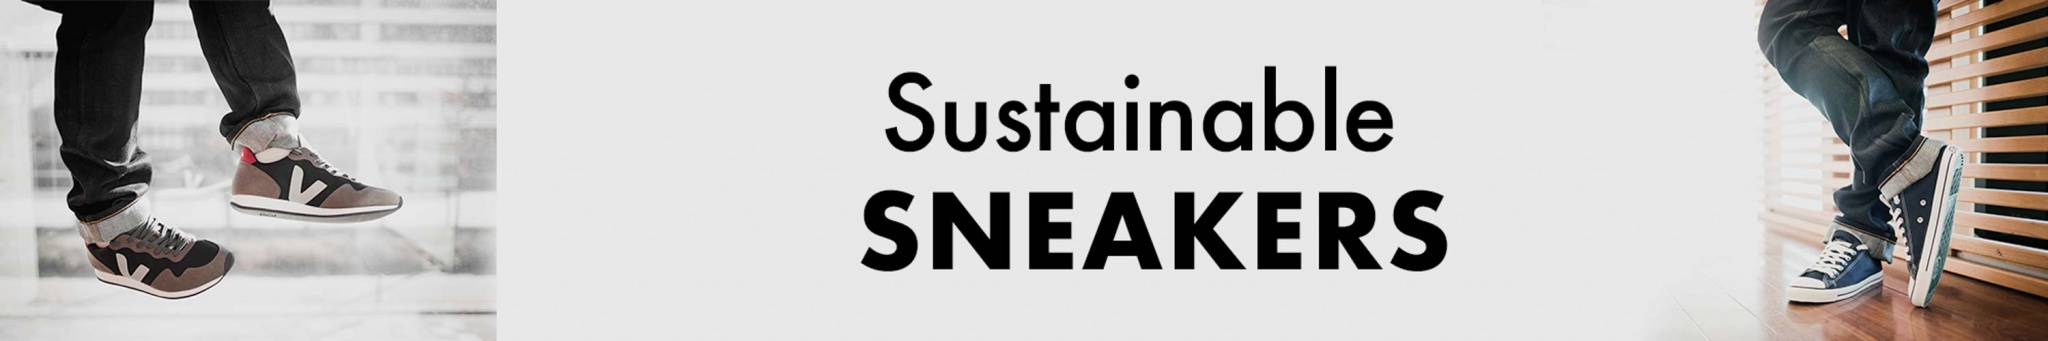 Sustainable-sneakers